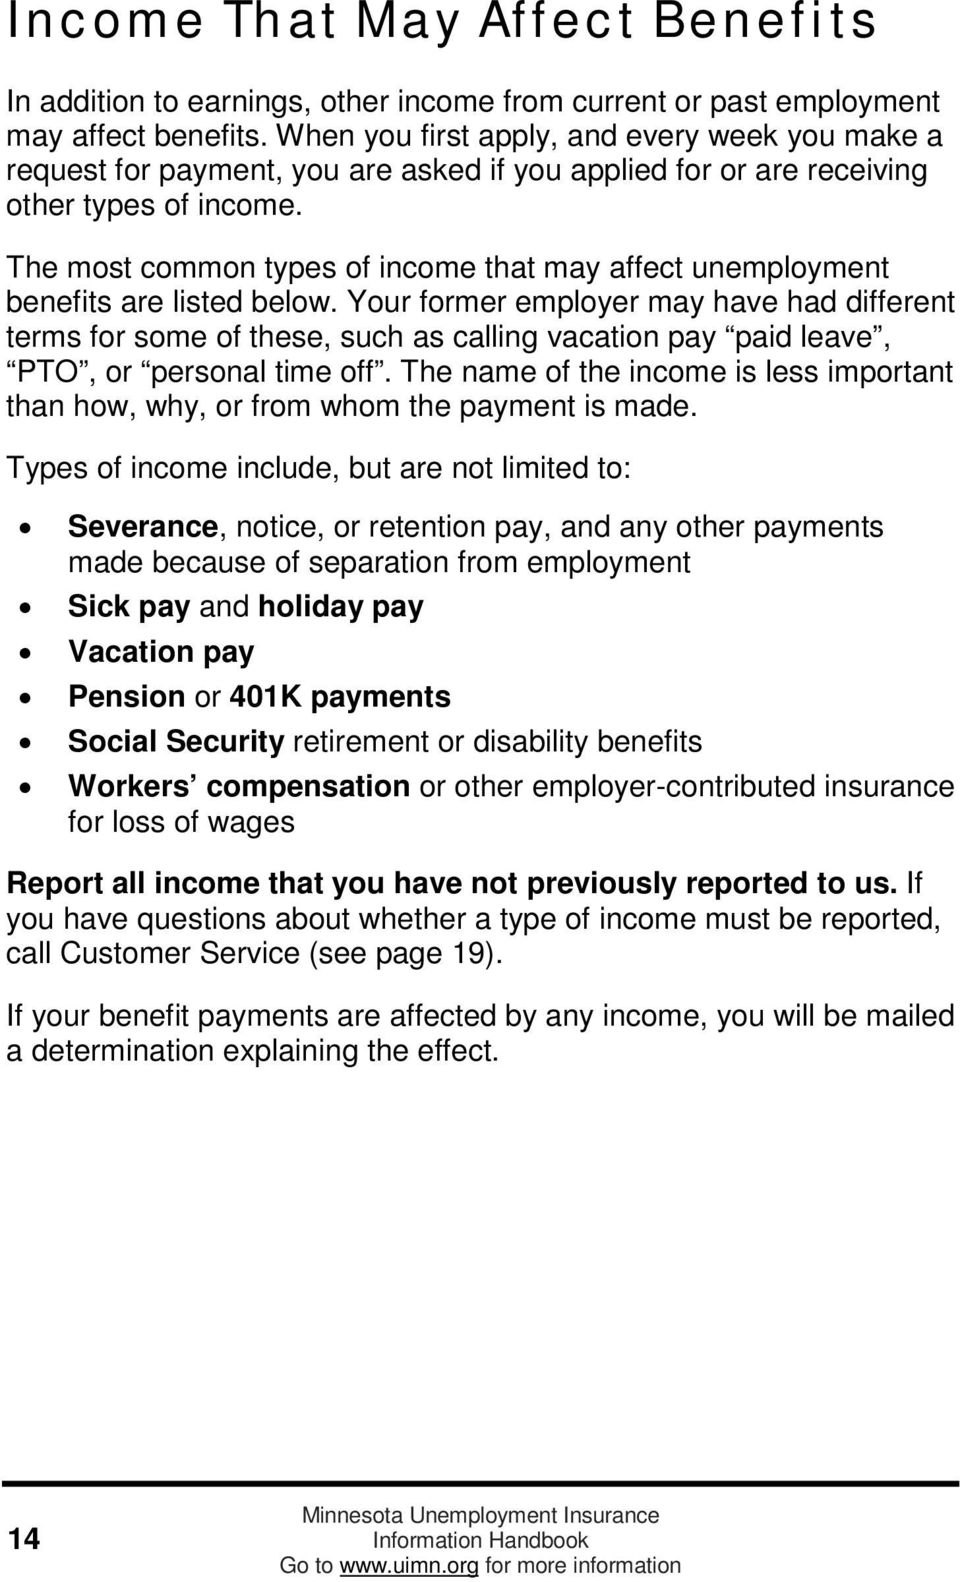 The most common types of income that may affect unemployment benefits are listed below.